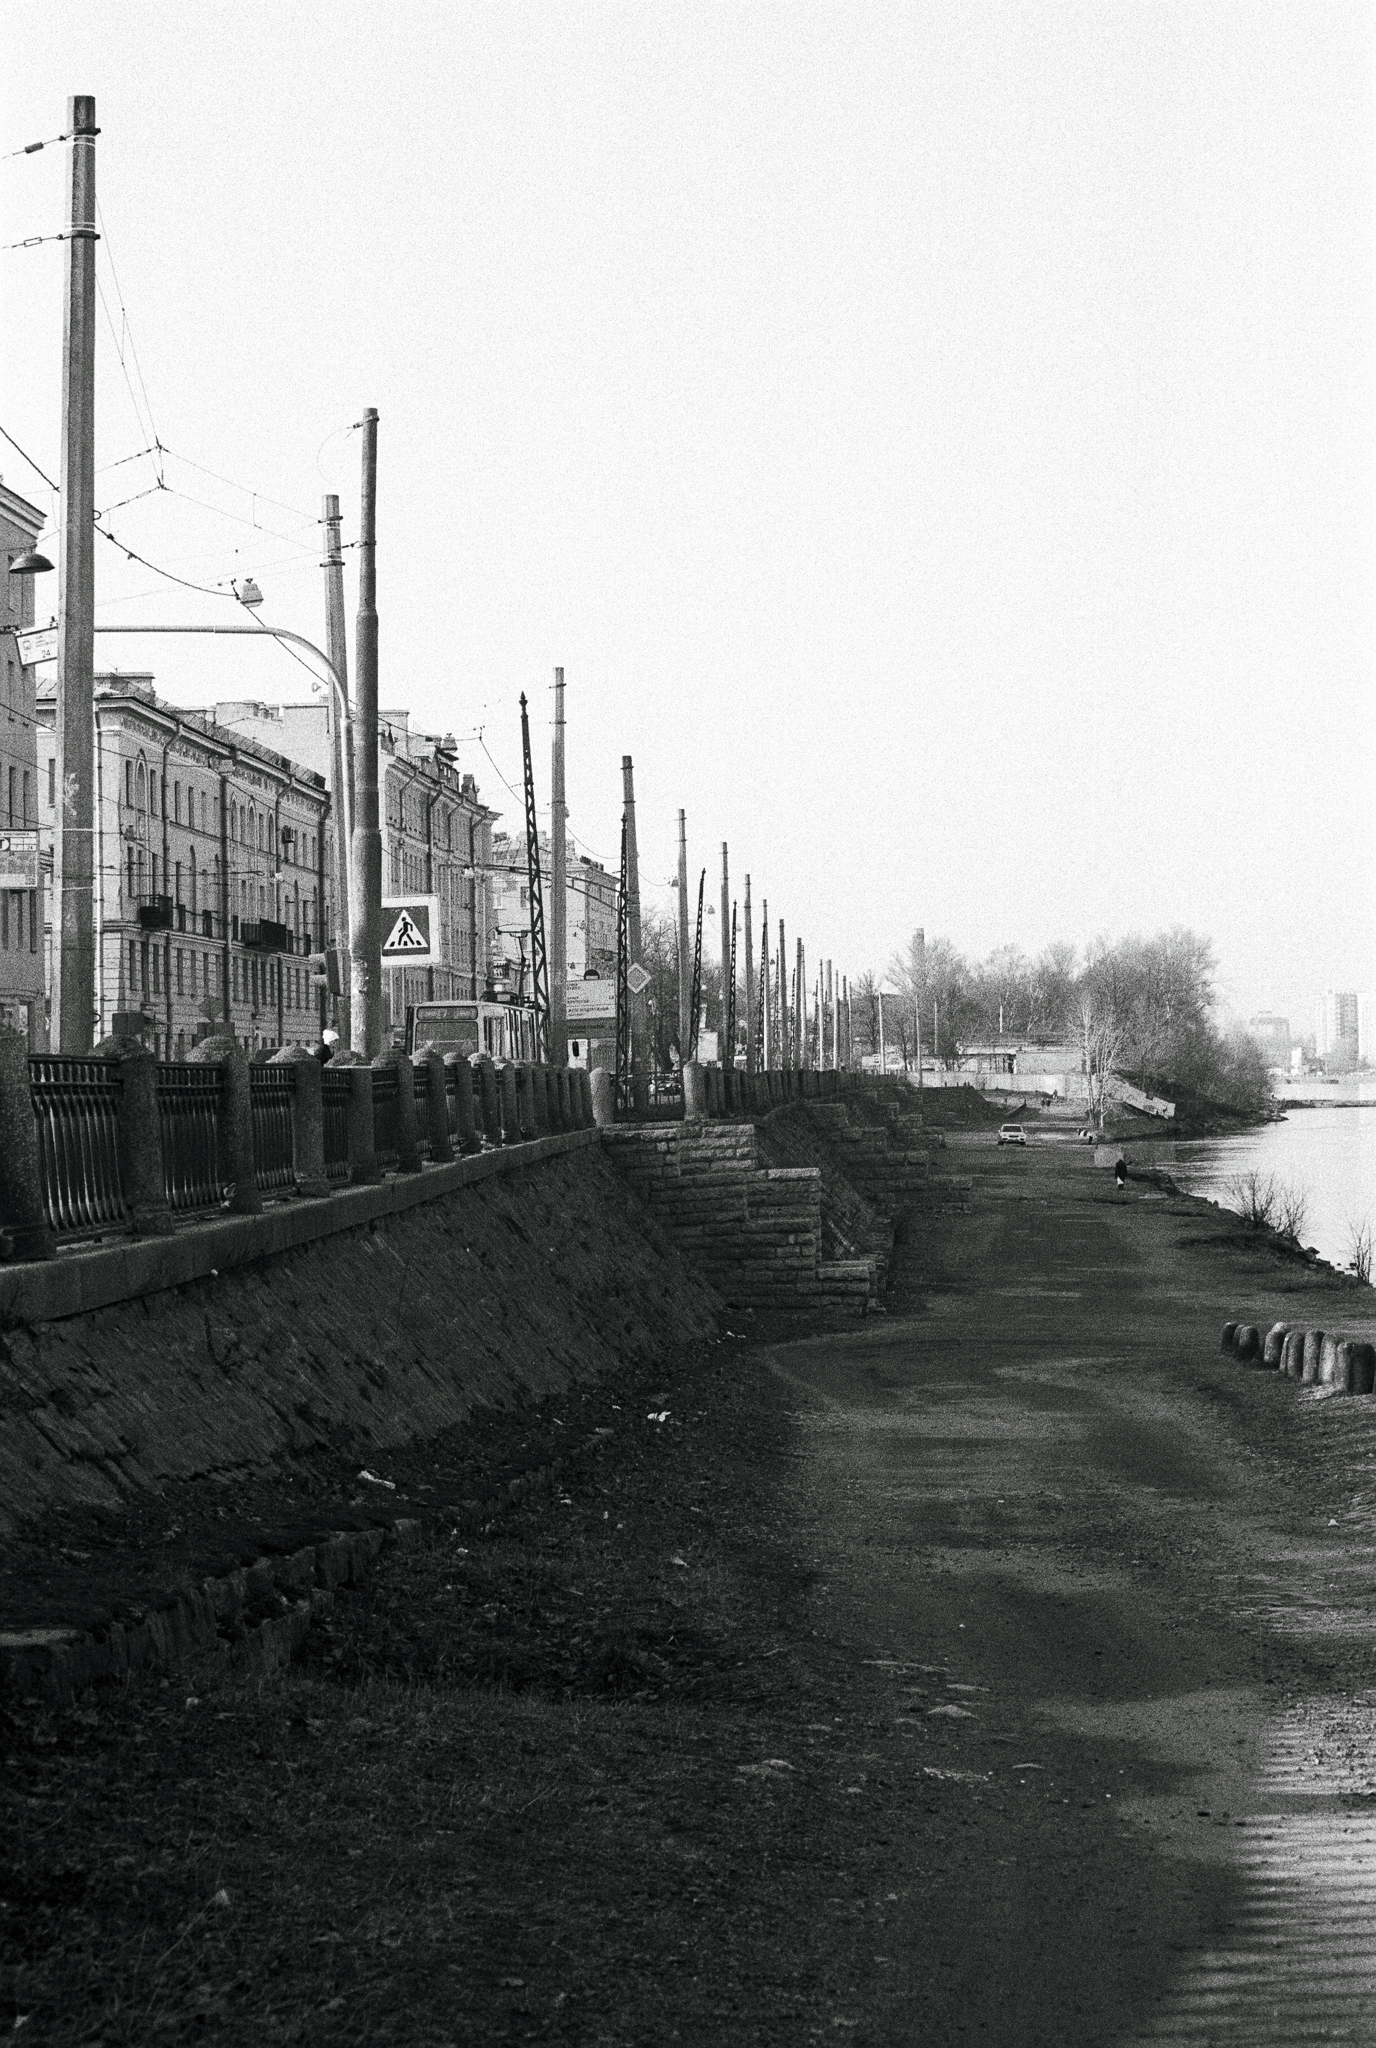 Kodak 5222 Double-X Санкт-Петербург